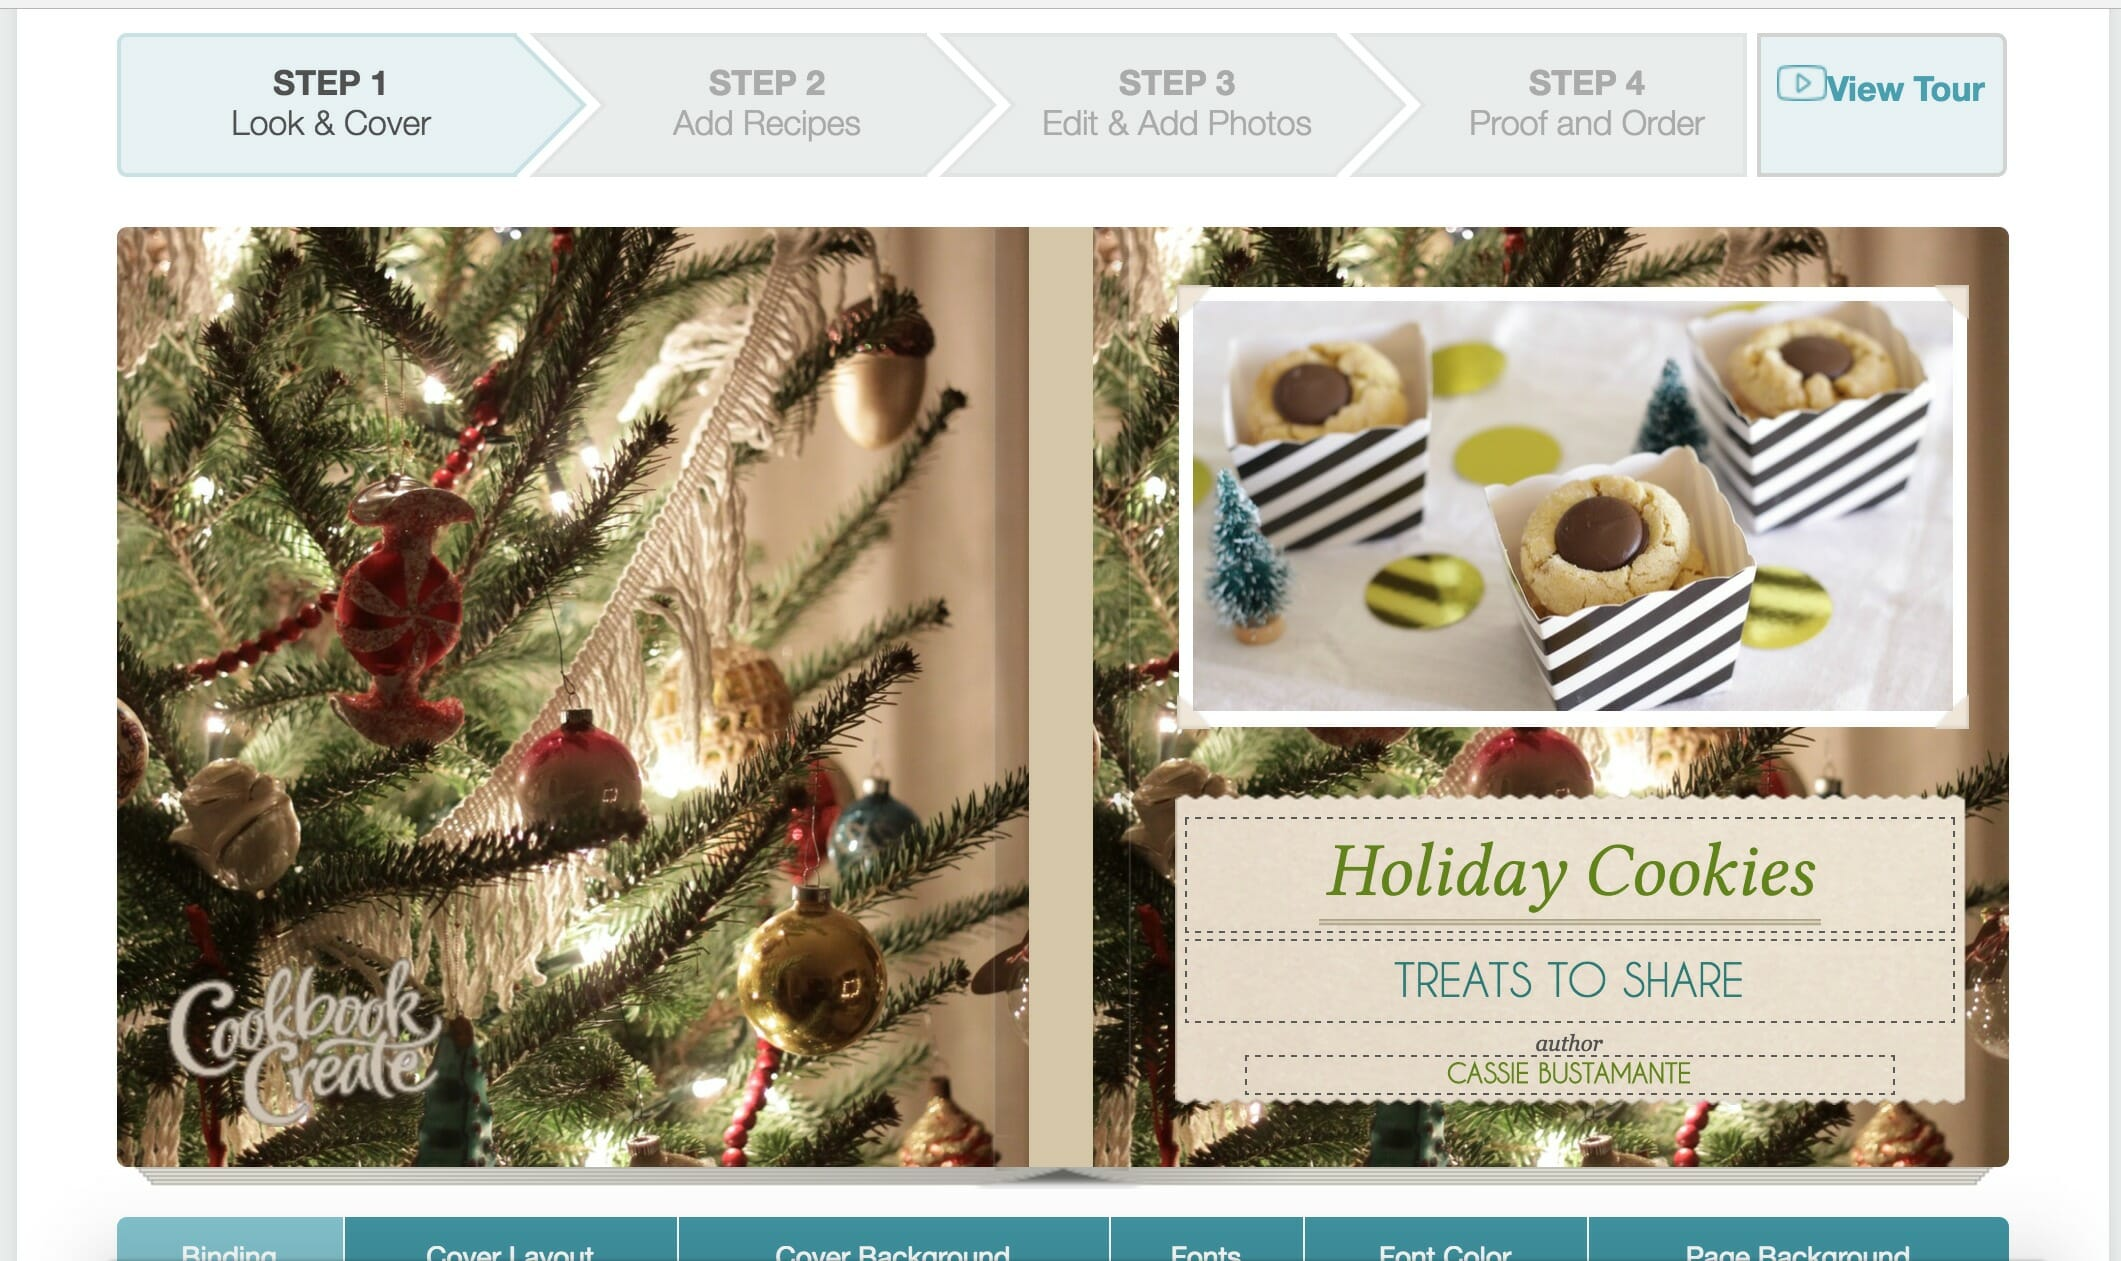 cookbook create cookie swap or family recipe collection gift idea